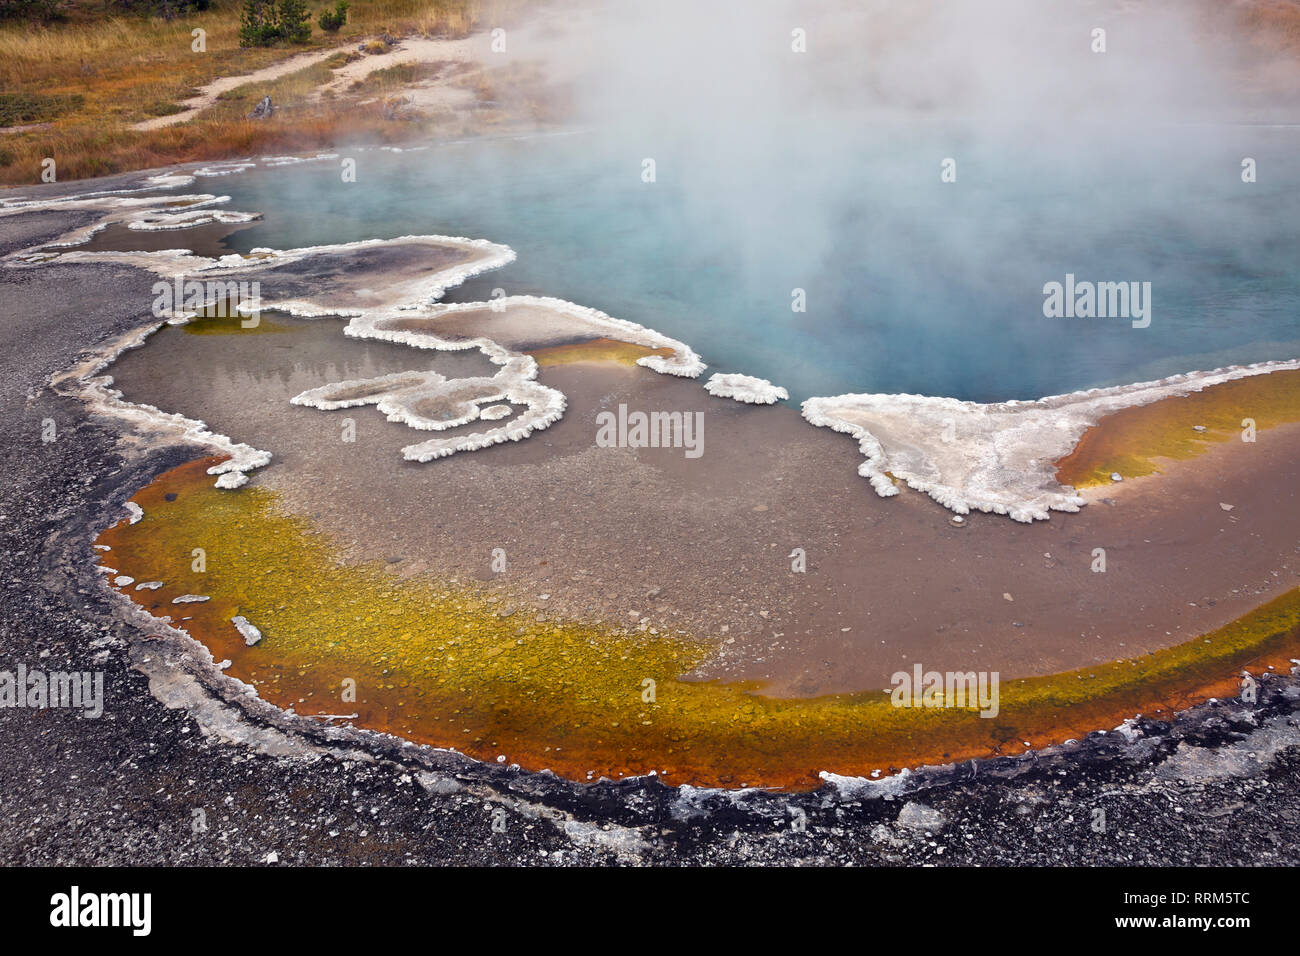 WY03838-00...WYOMING -  Columbia Spring with a colorful area of cyanobacteria edged with fanciful shapes of the bulbous sinter formations along the sh - Stock Image